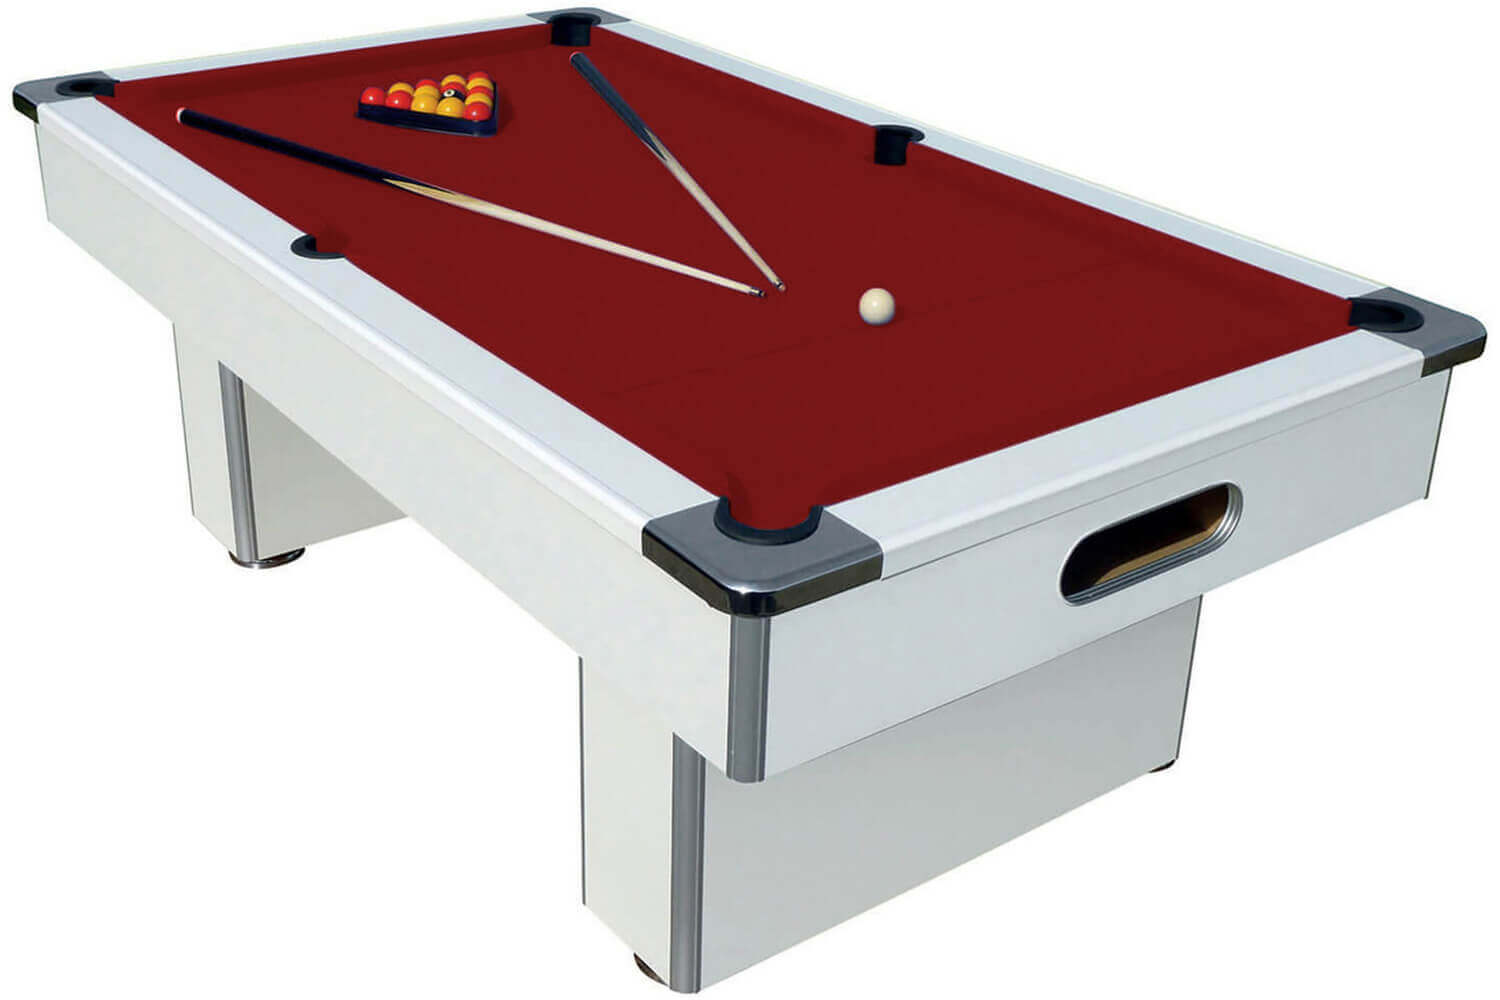 Slimline pool table 6 ft 7 ft liberty games for Table 6 of gstr 1